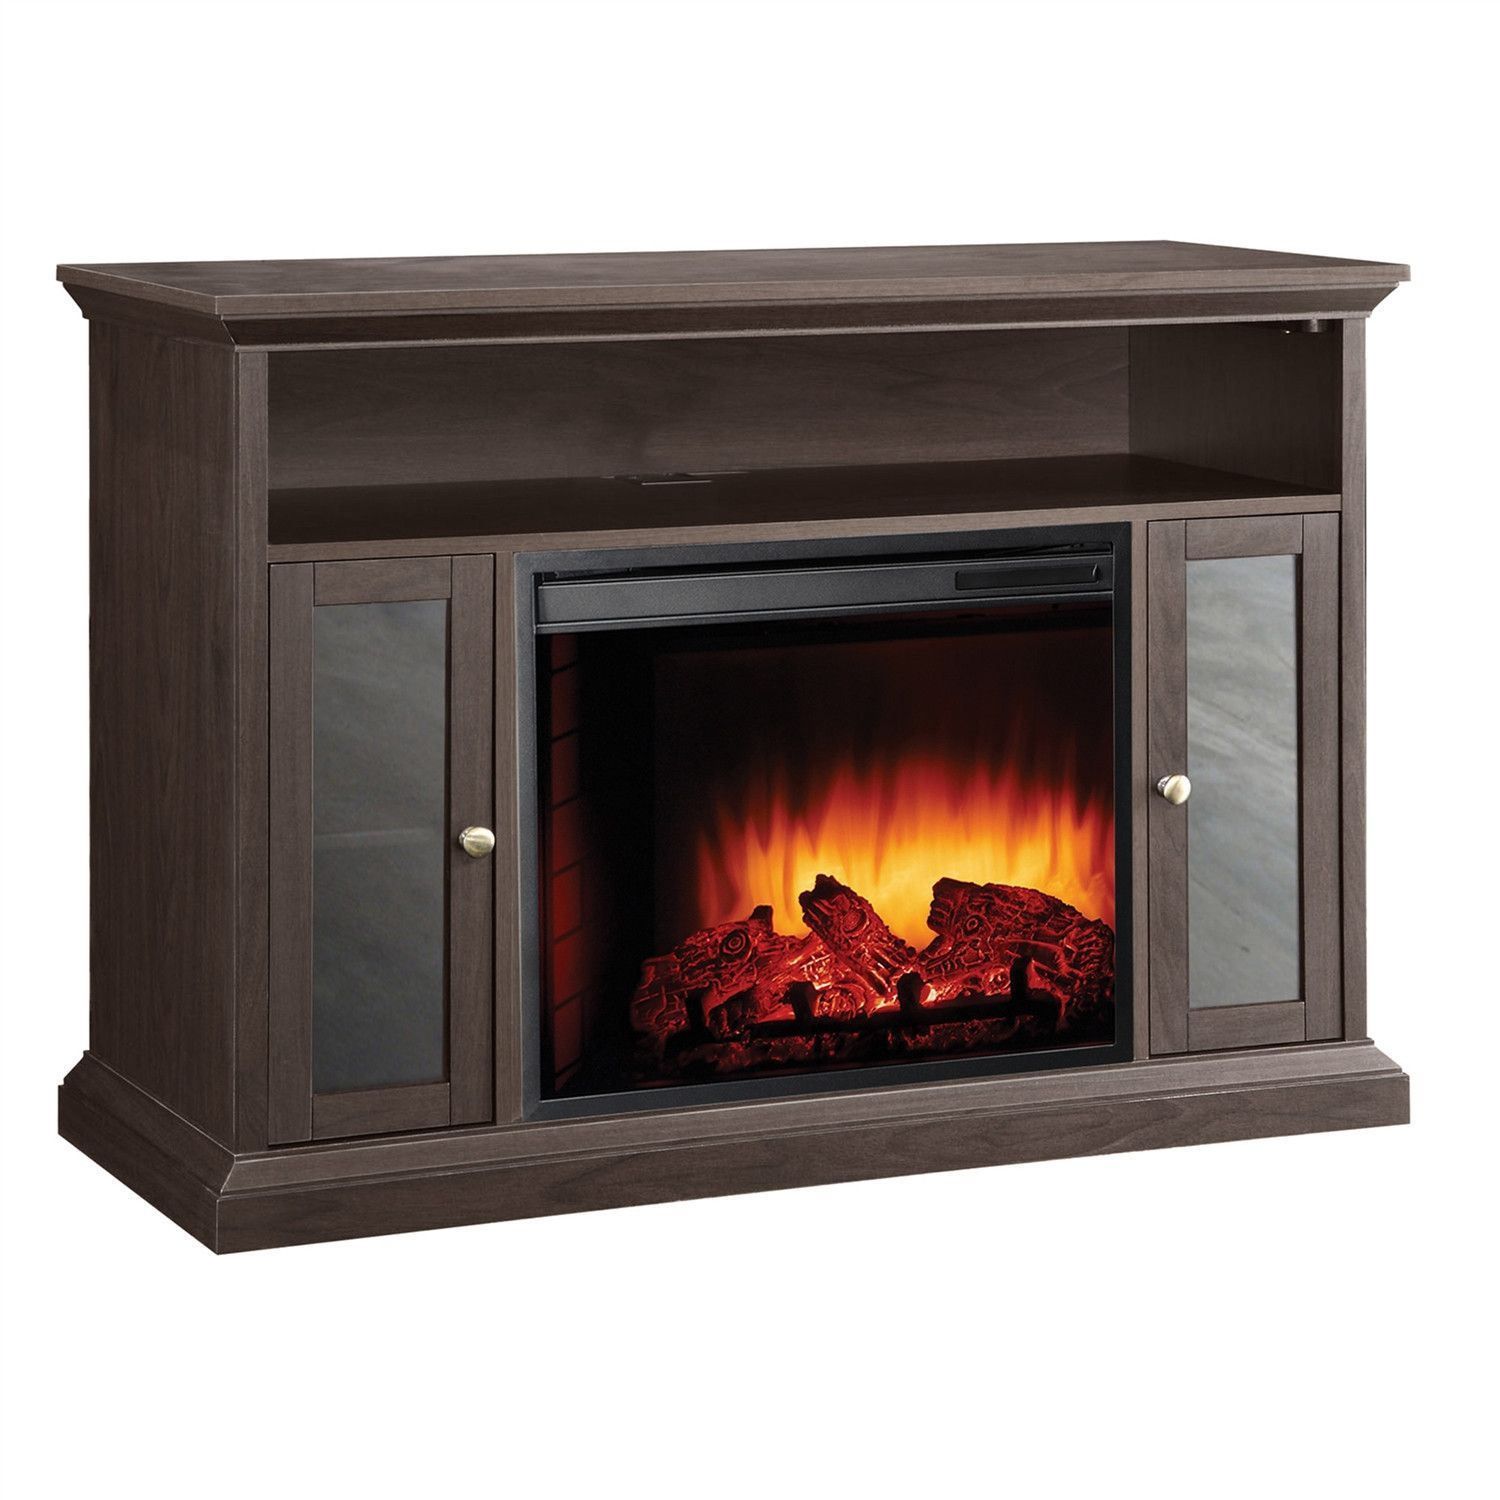 electric fireplace space heater tv stand 13500 watt home